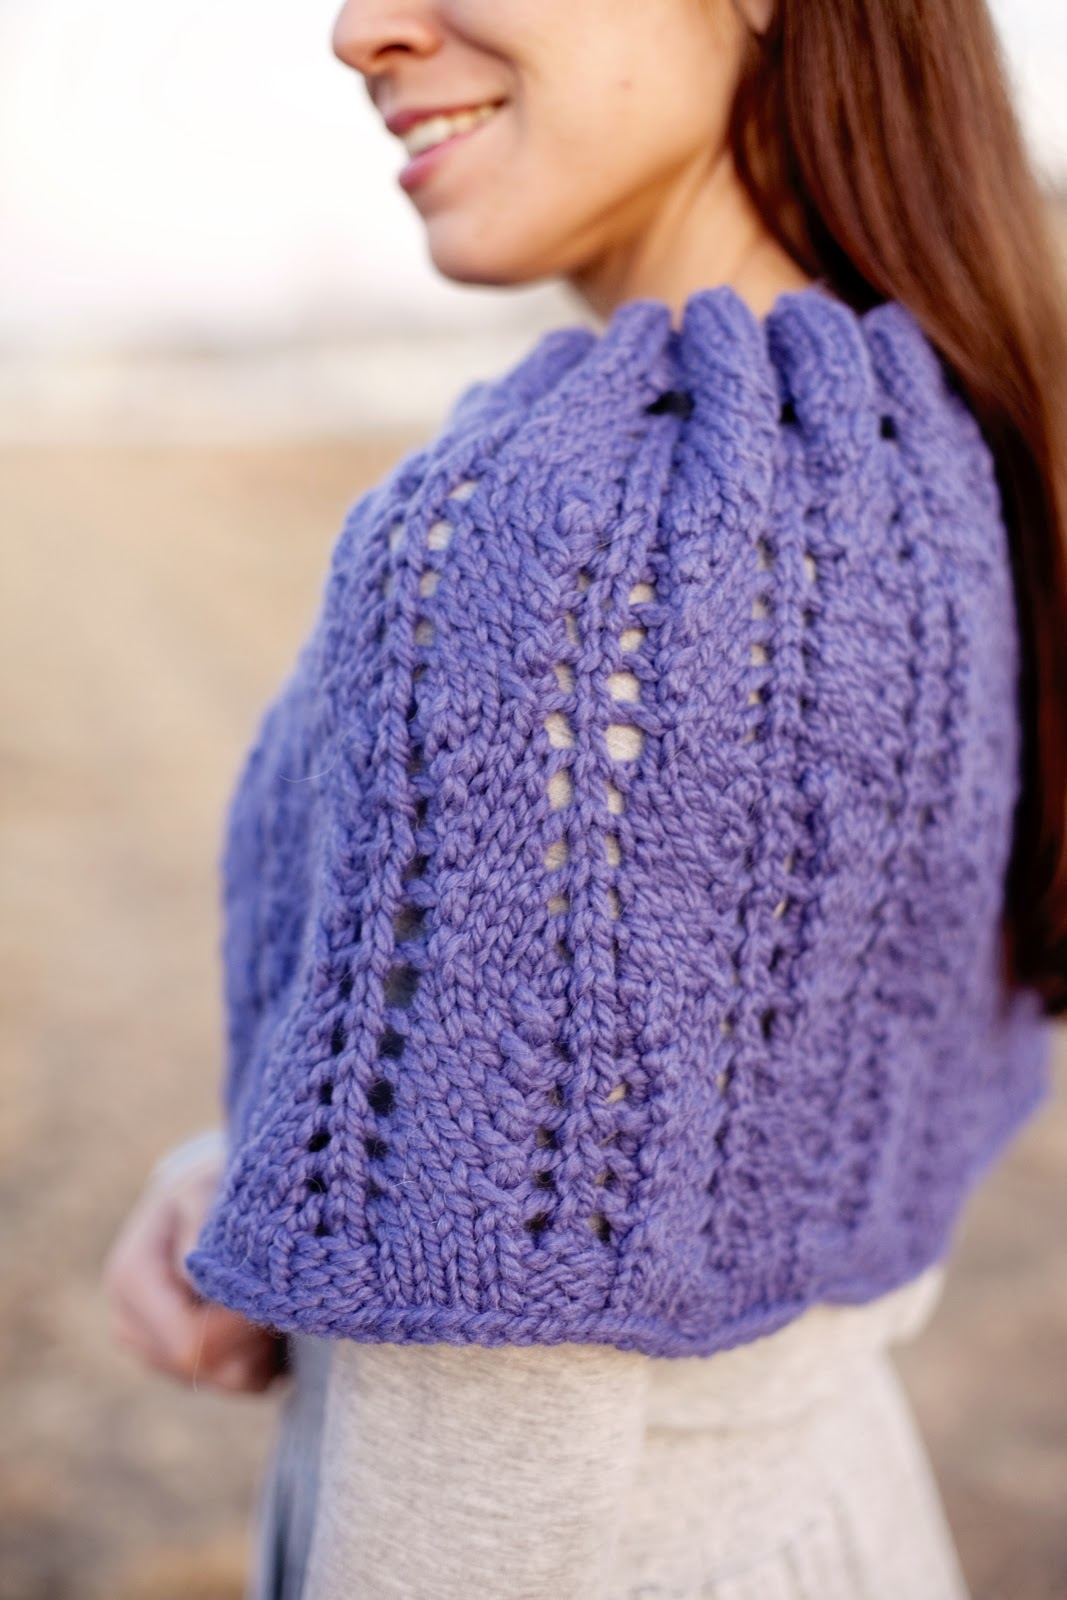 New Knitting Pattern : Slate Falls Press: Blackcap, a new knitting pattern